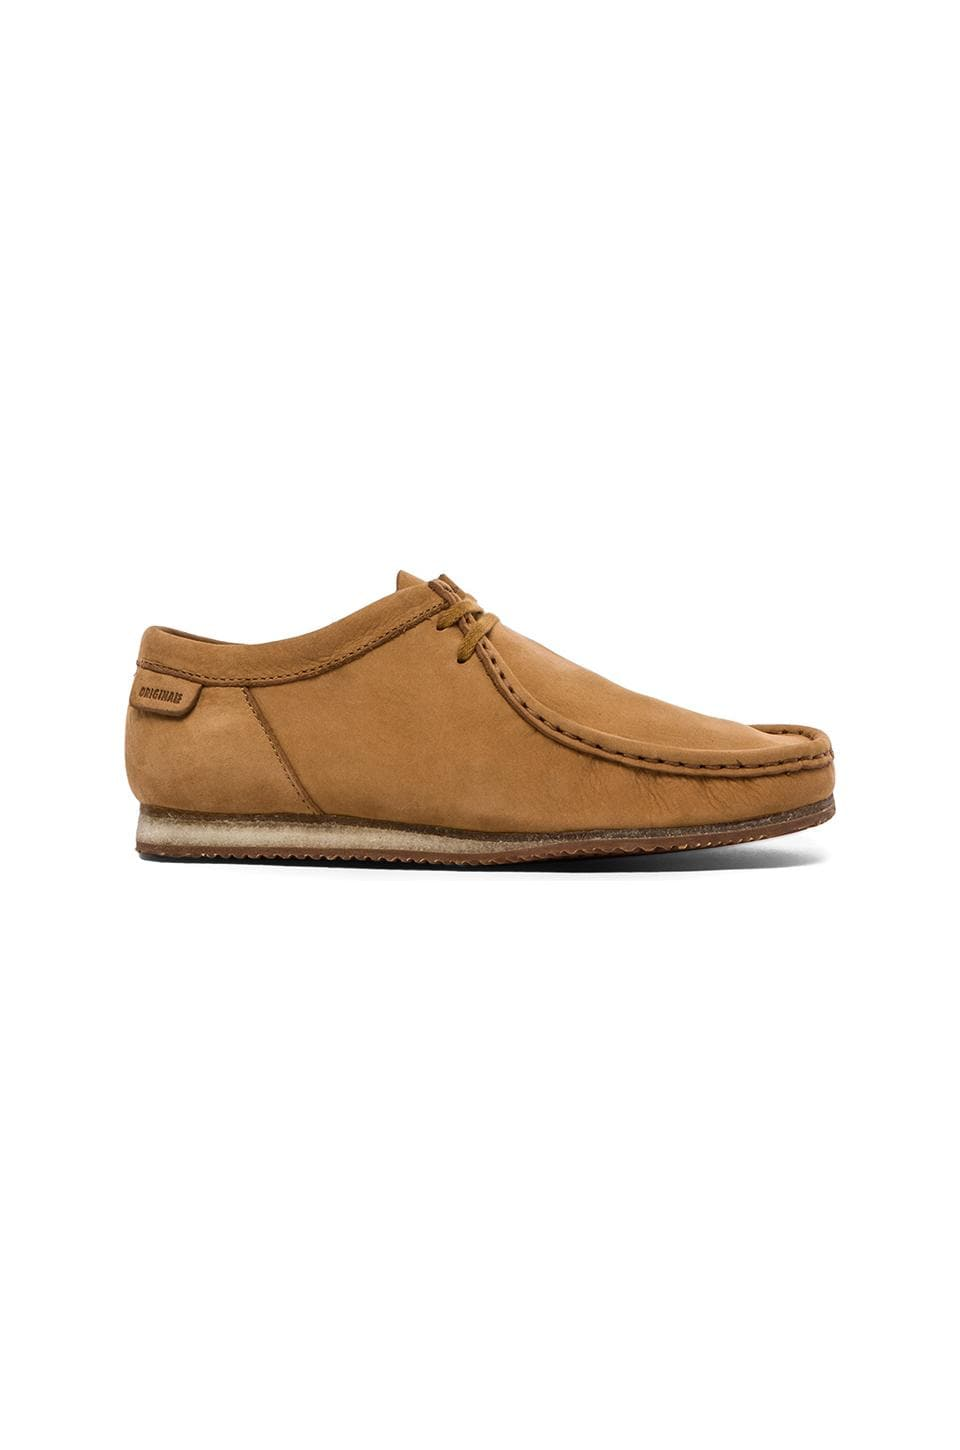 Clarks Originals Wallabee Run in Tan Nubuck